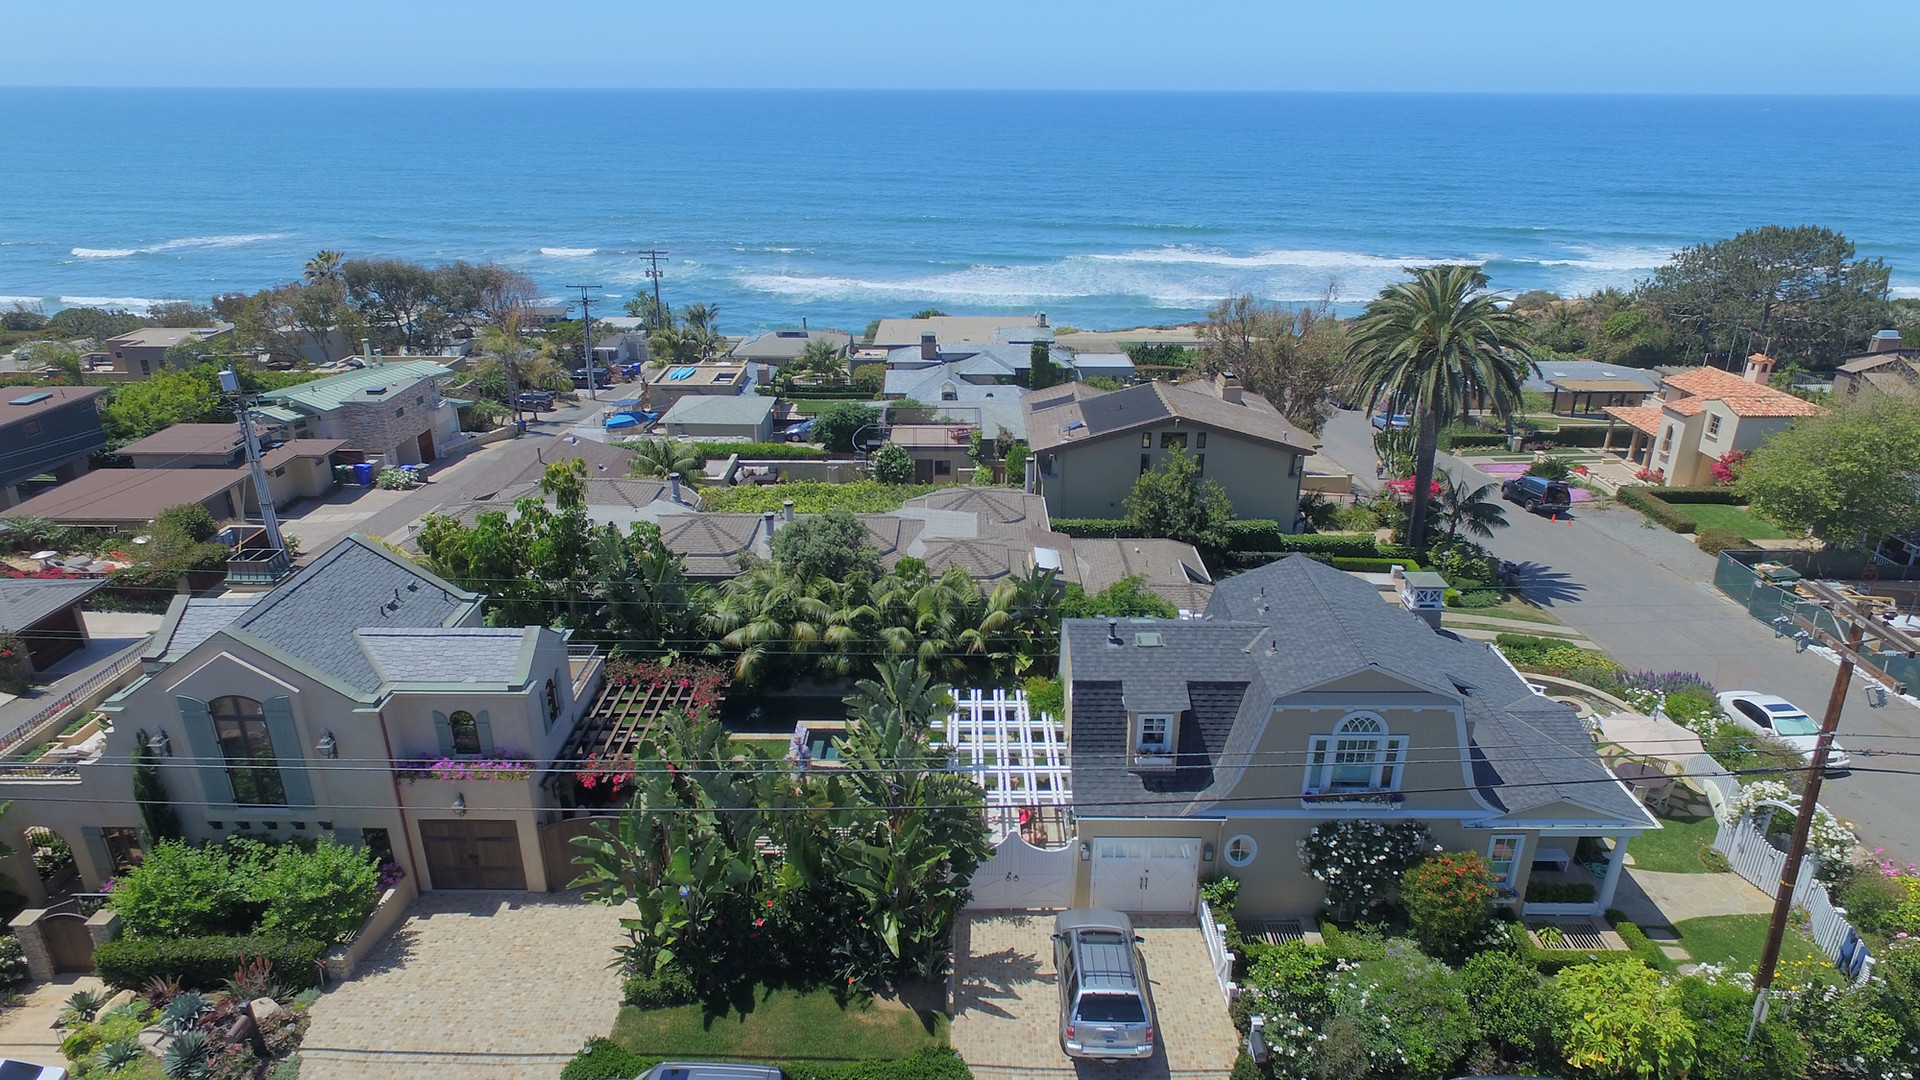 Del Mar Seaside Cottages